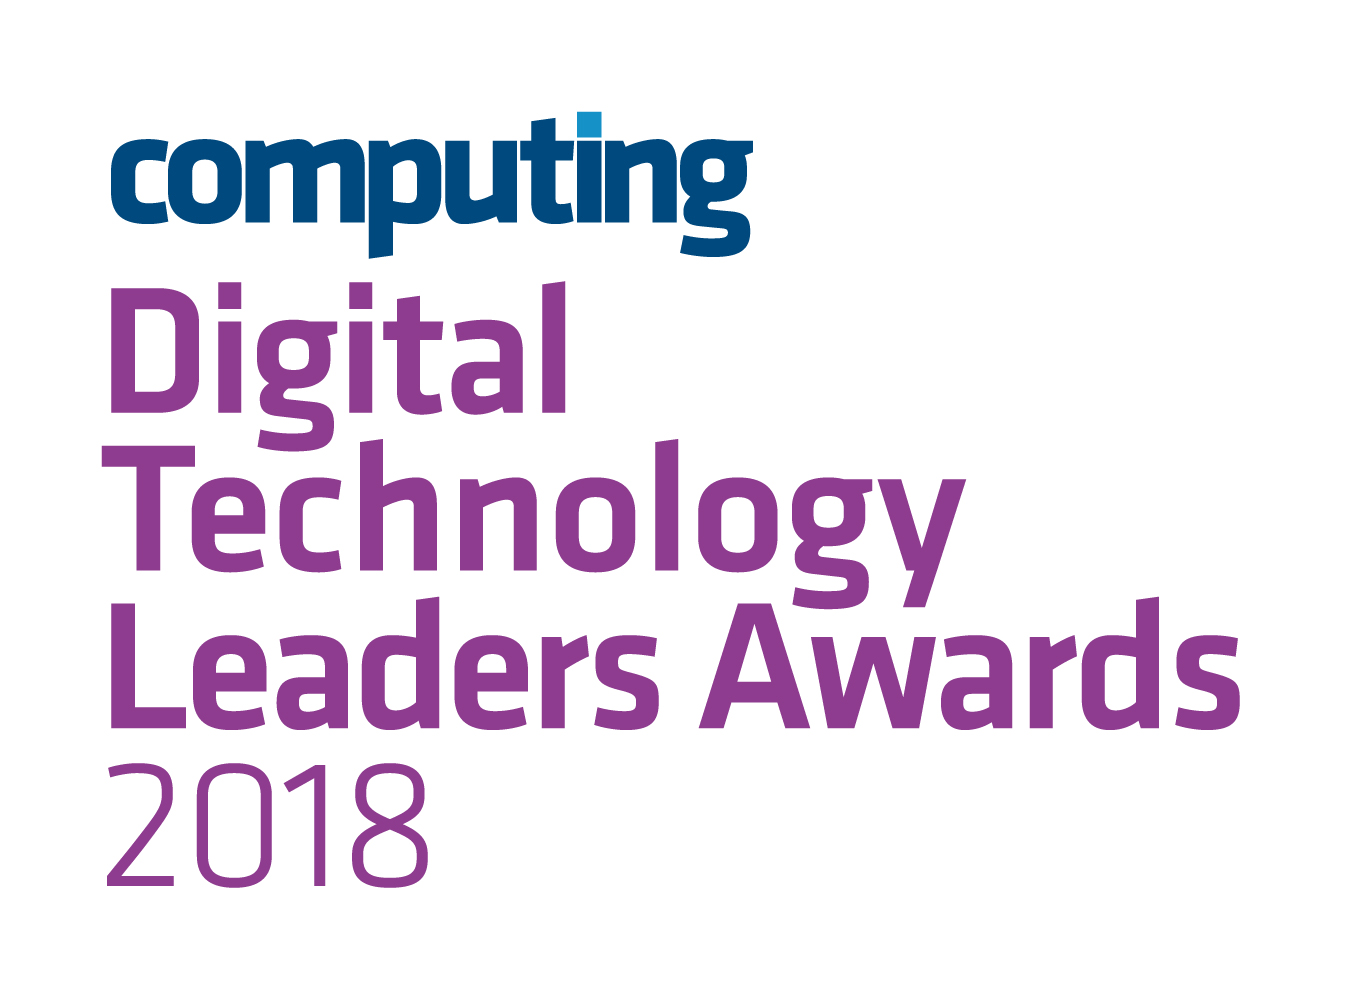 Computing Digital Technology Leaders Awards 2018